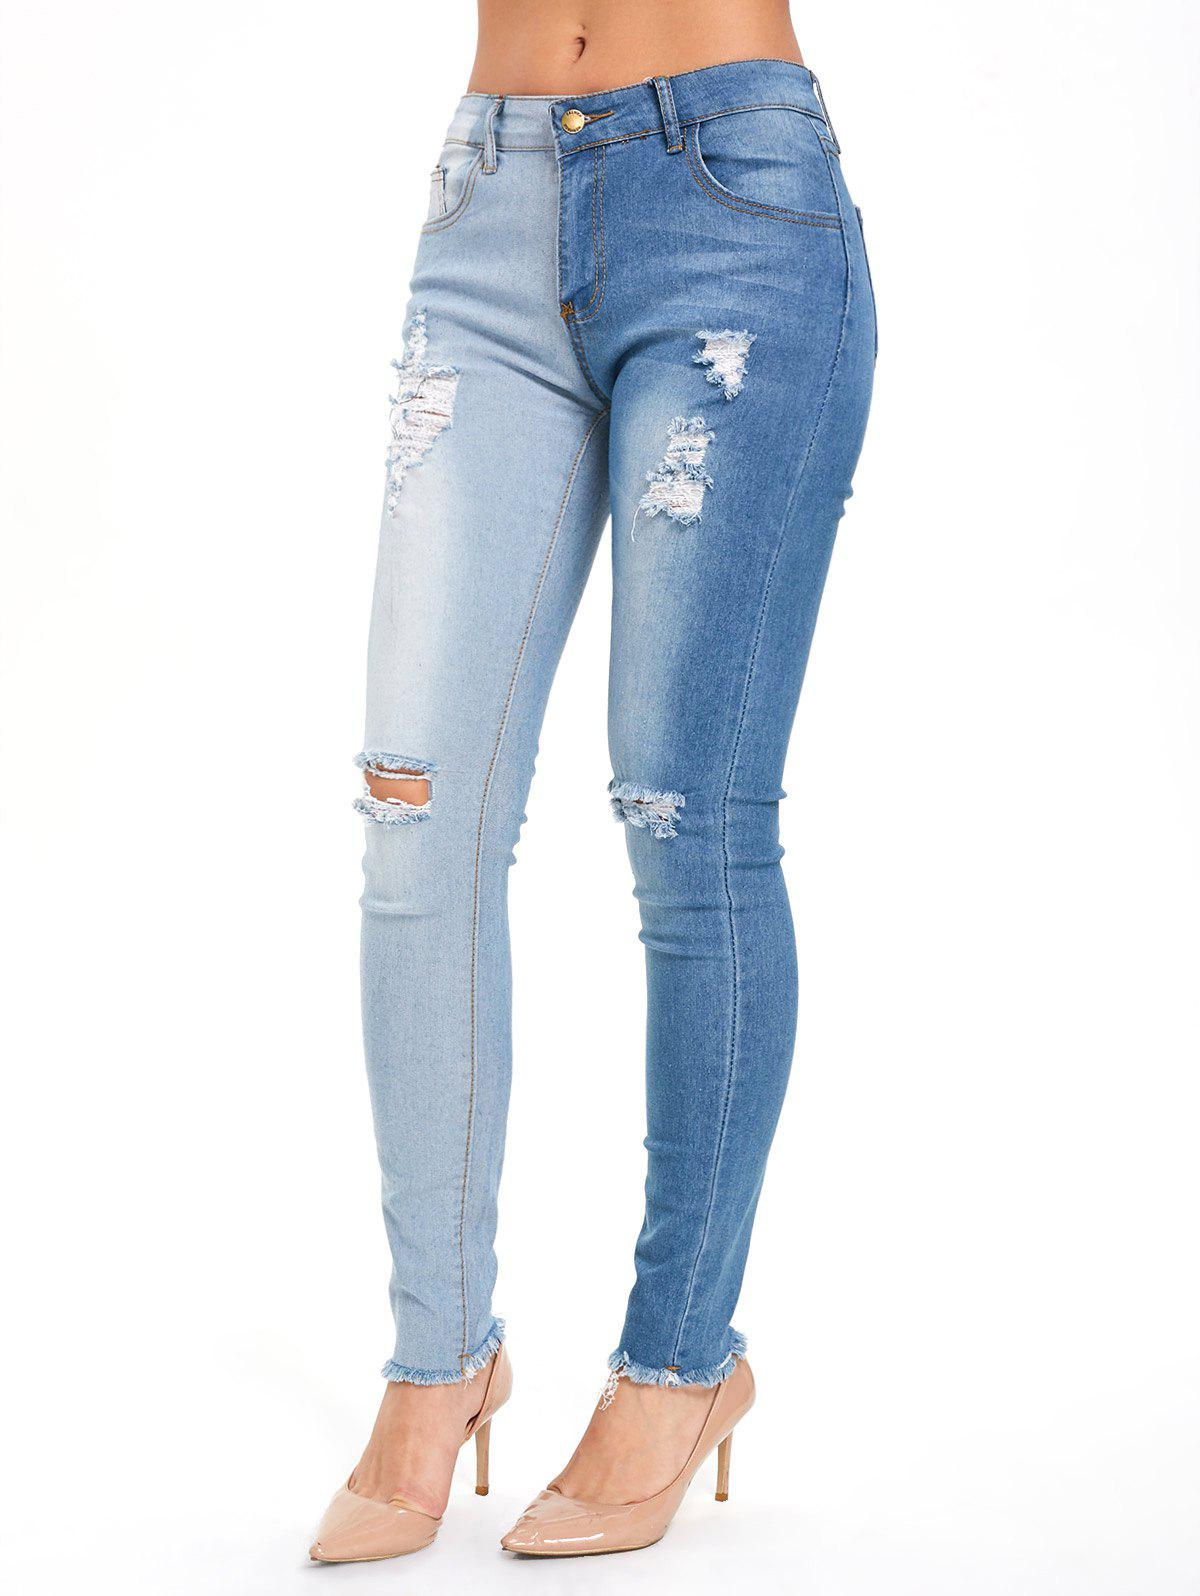 Shops Color Block High Waisted Ripped Jeans